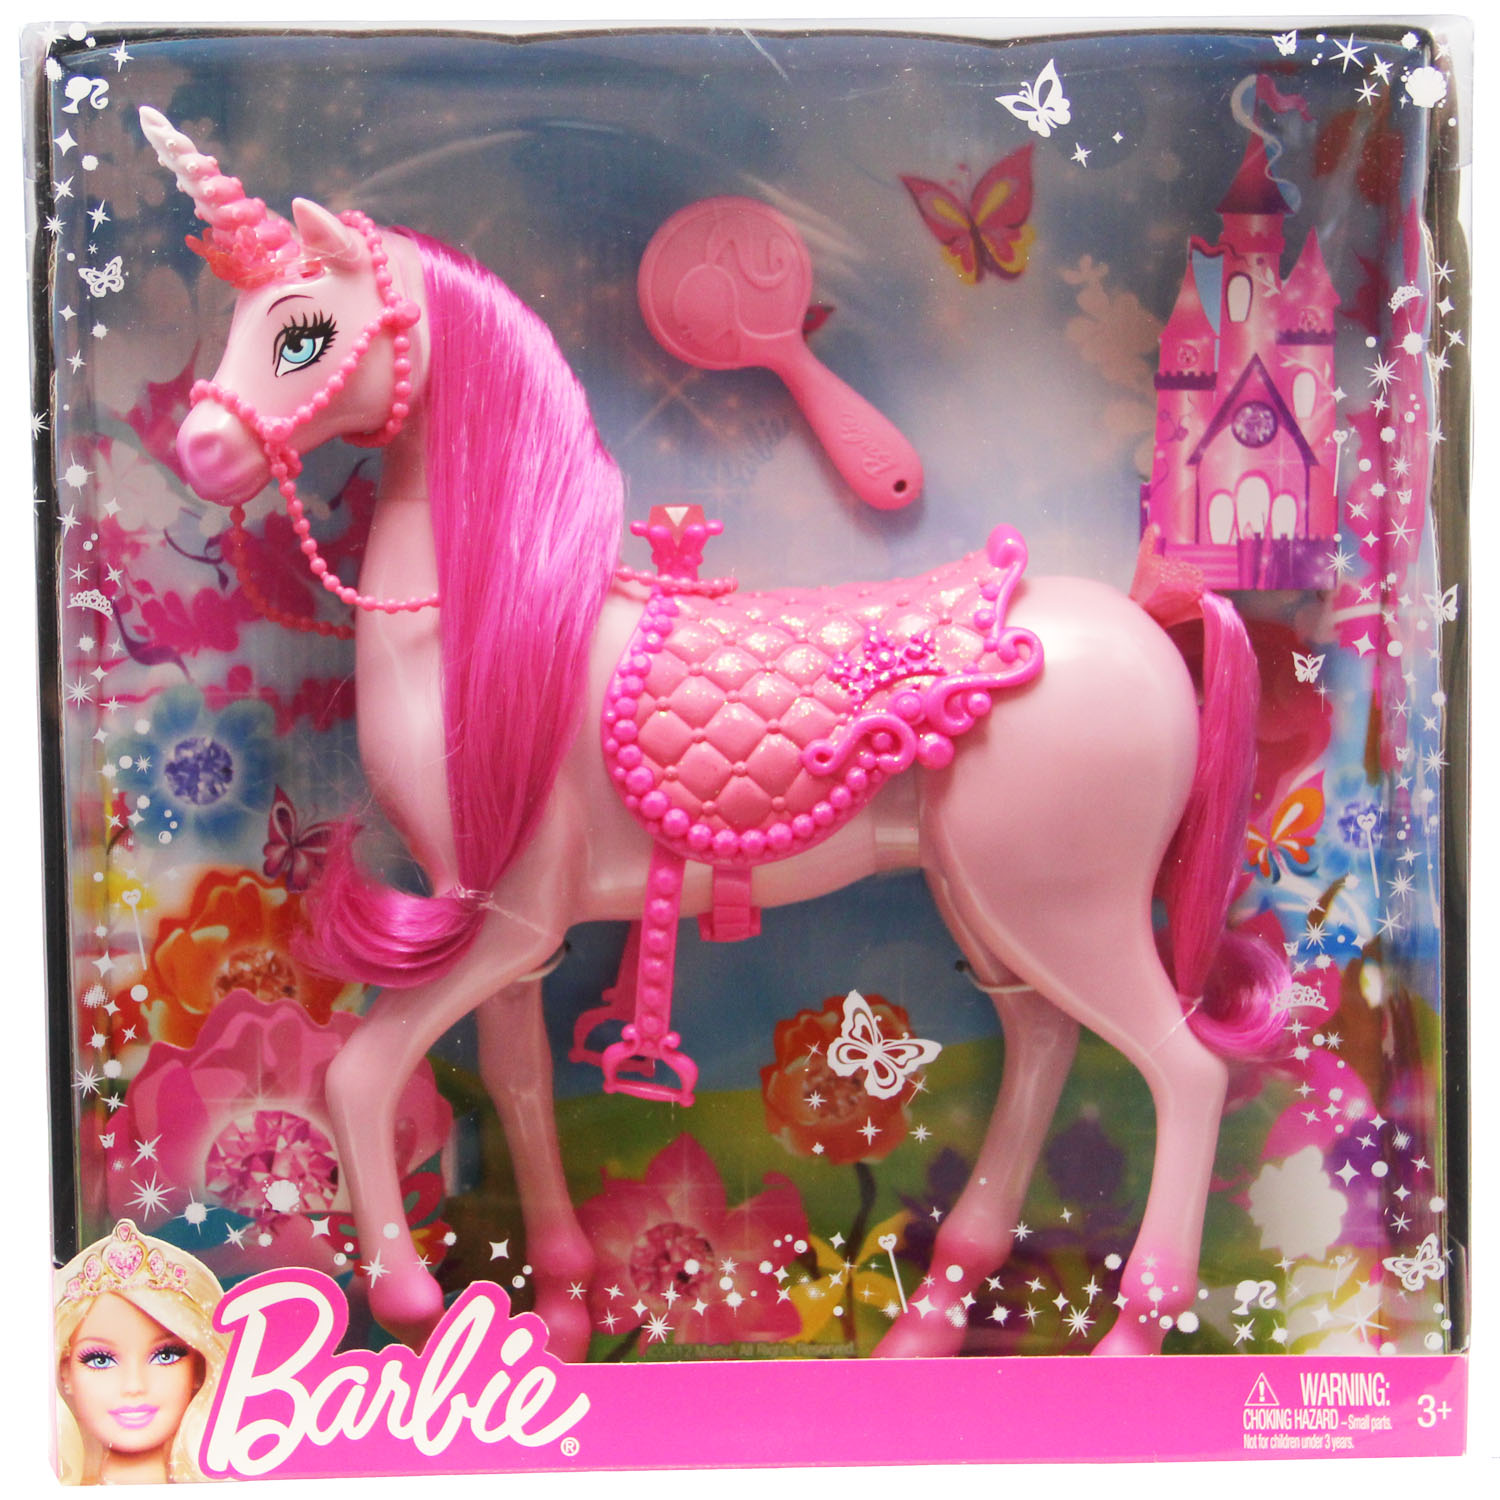 Unicorn Toys For Girls : Barbie toys pink princess unicorn at toystop